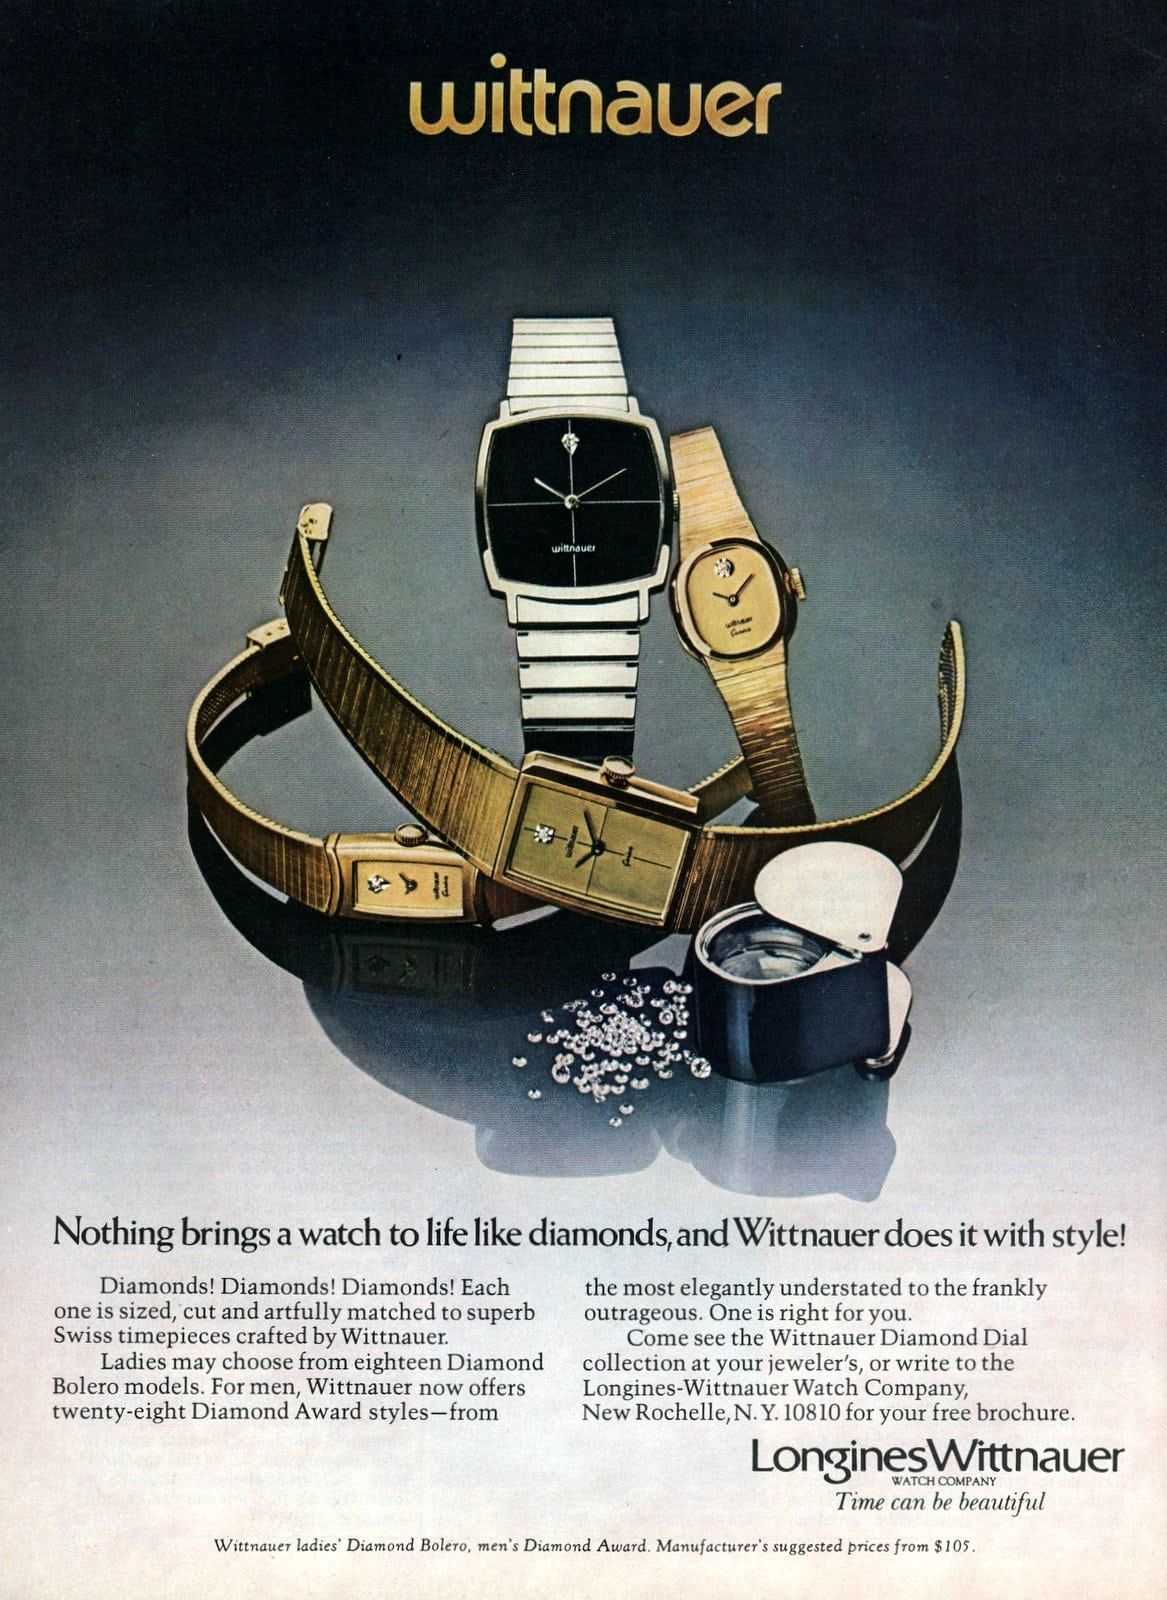 Longines Wittnauer vintage 1970s watches (1977)